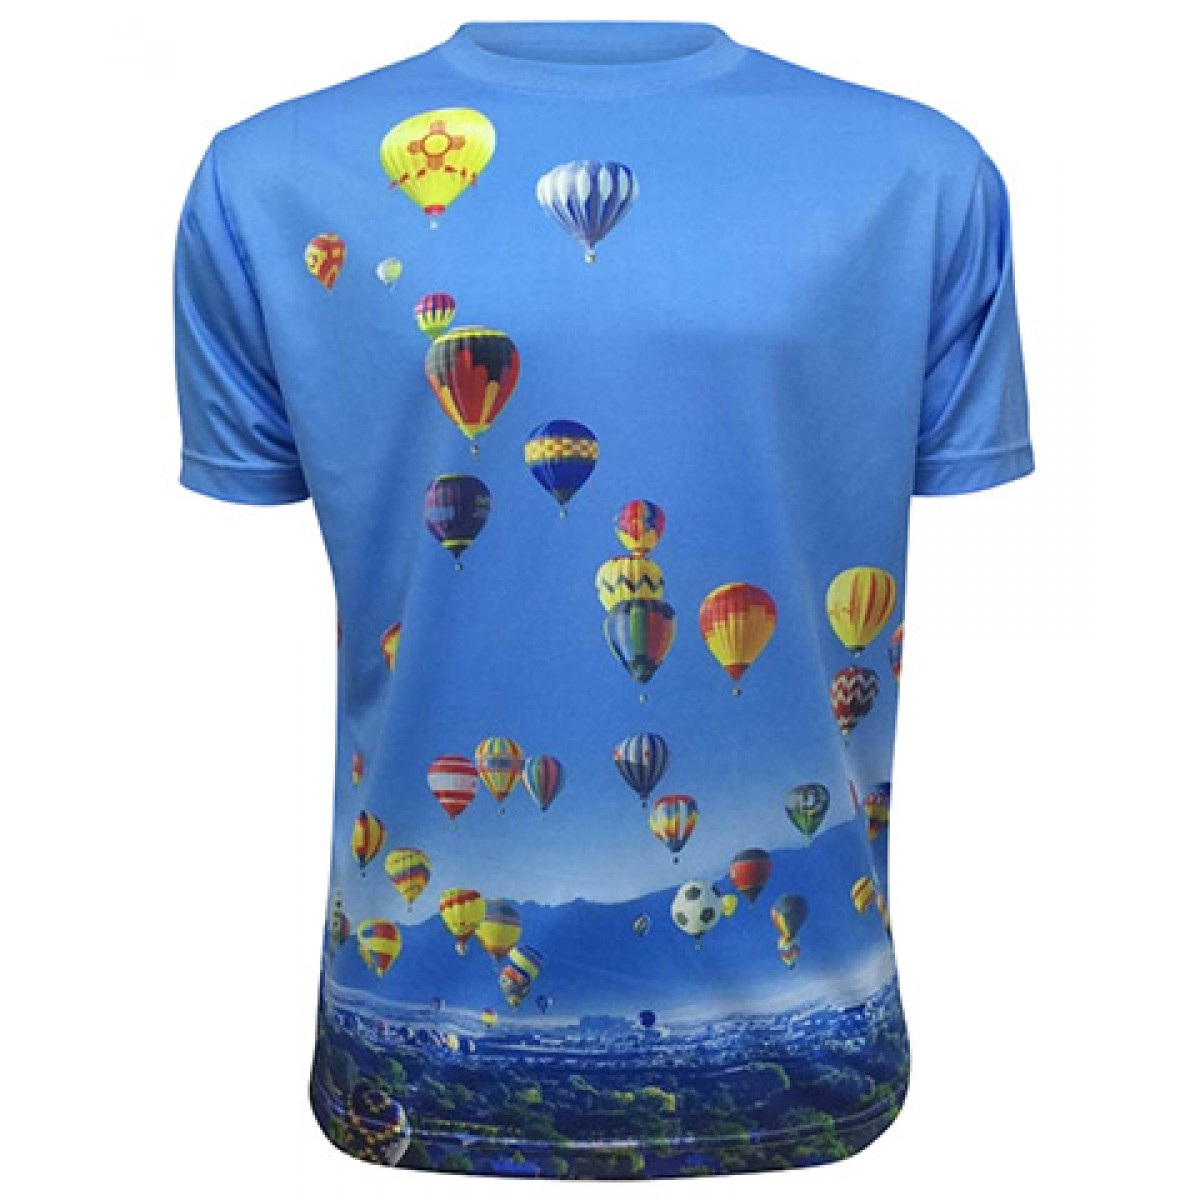 AIBF Sublimated Short Sleeve-Blue-2XL